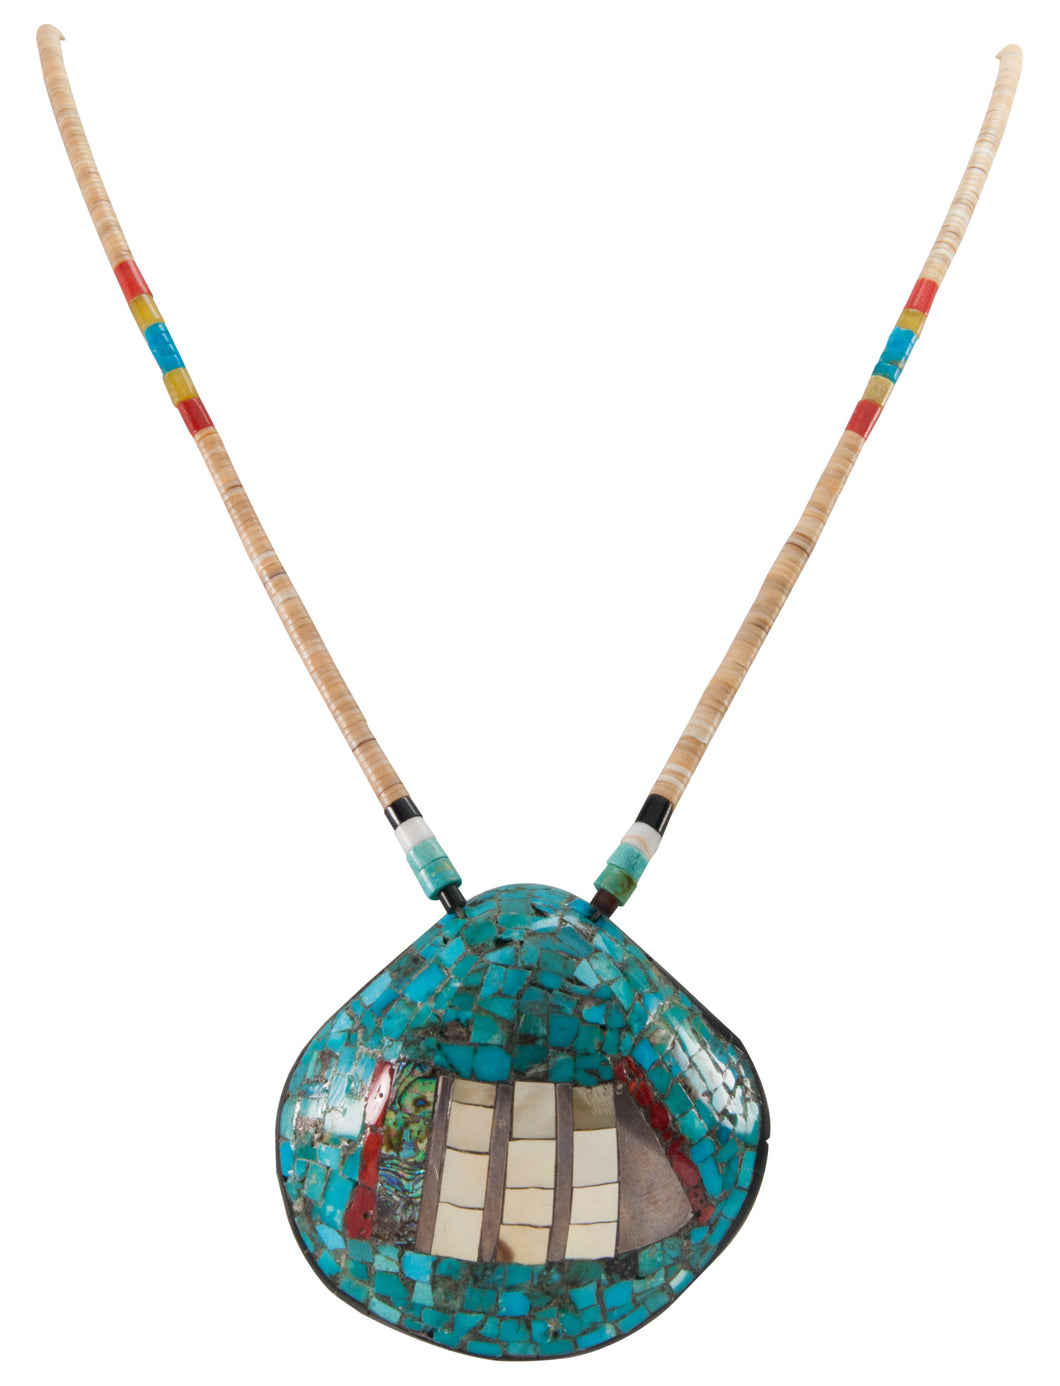 Santo Domingo Kewa Pueblo Dead Pawn Turquoise Shell Necklace SKU226702